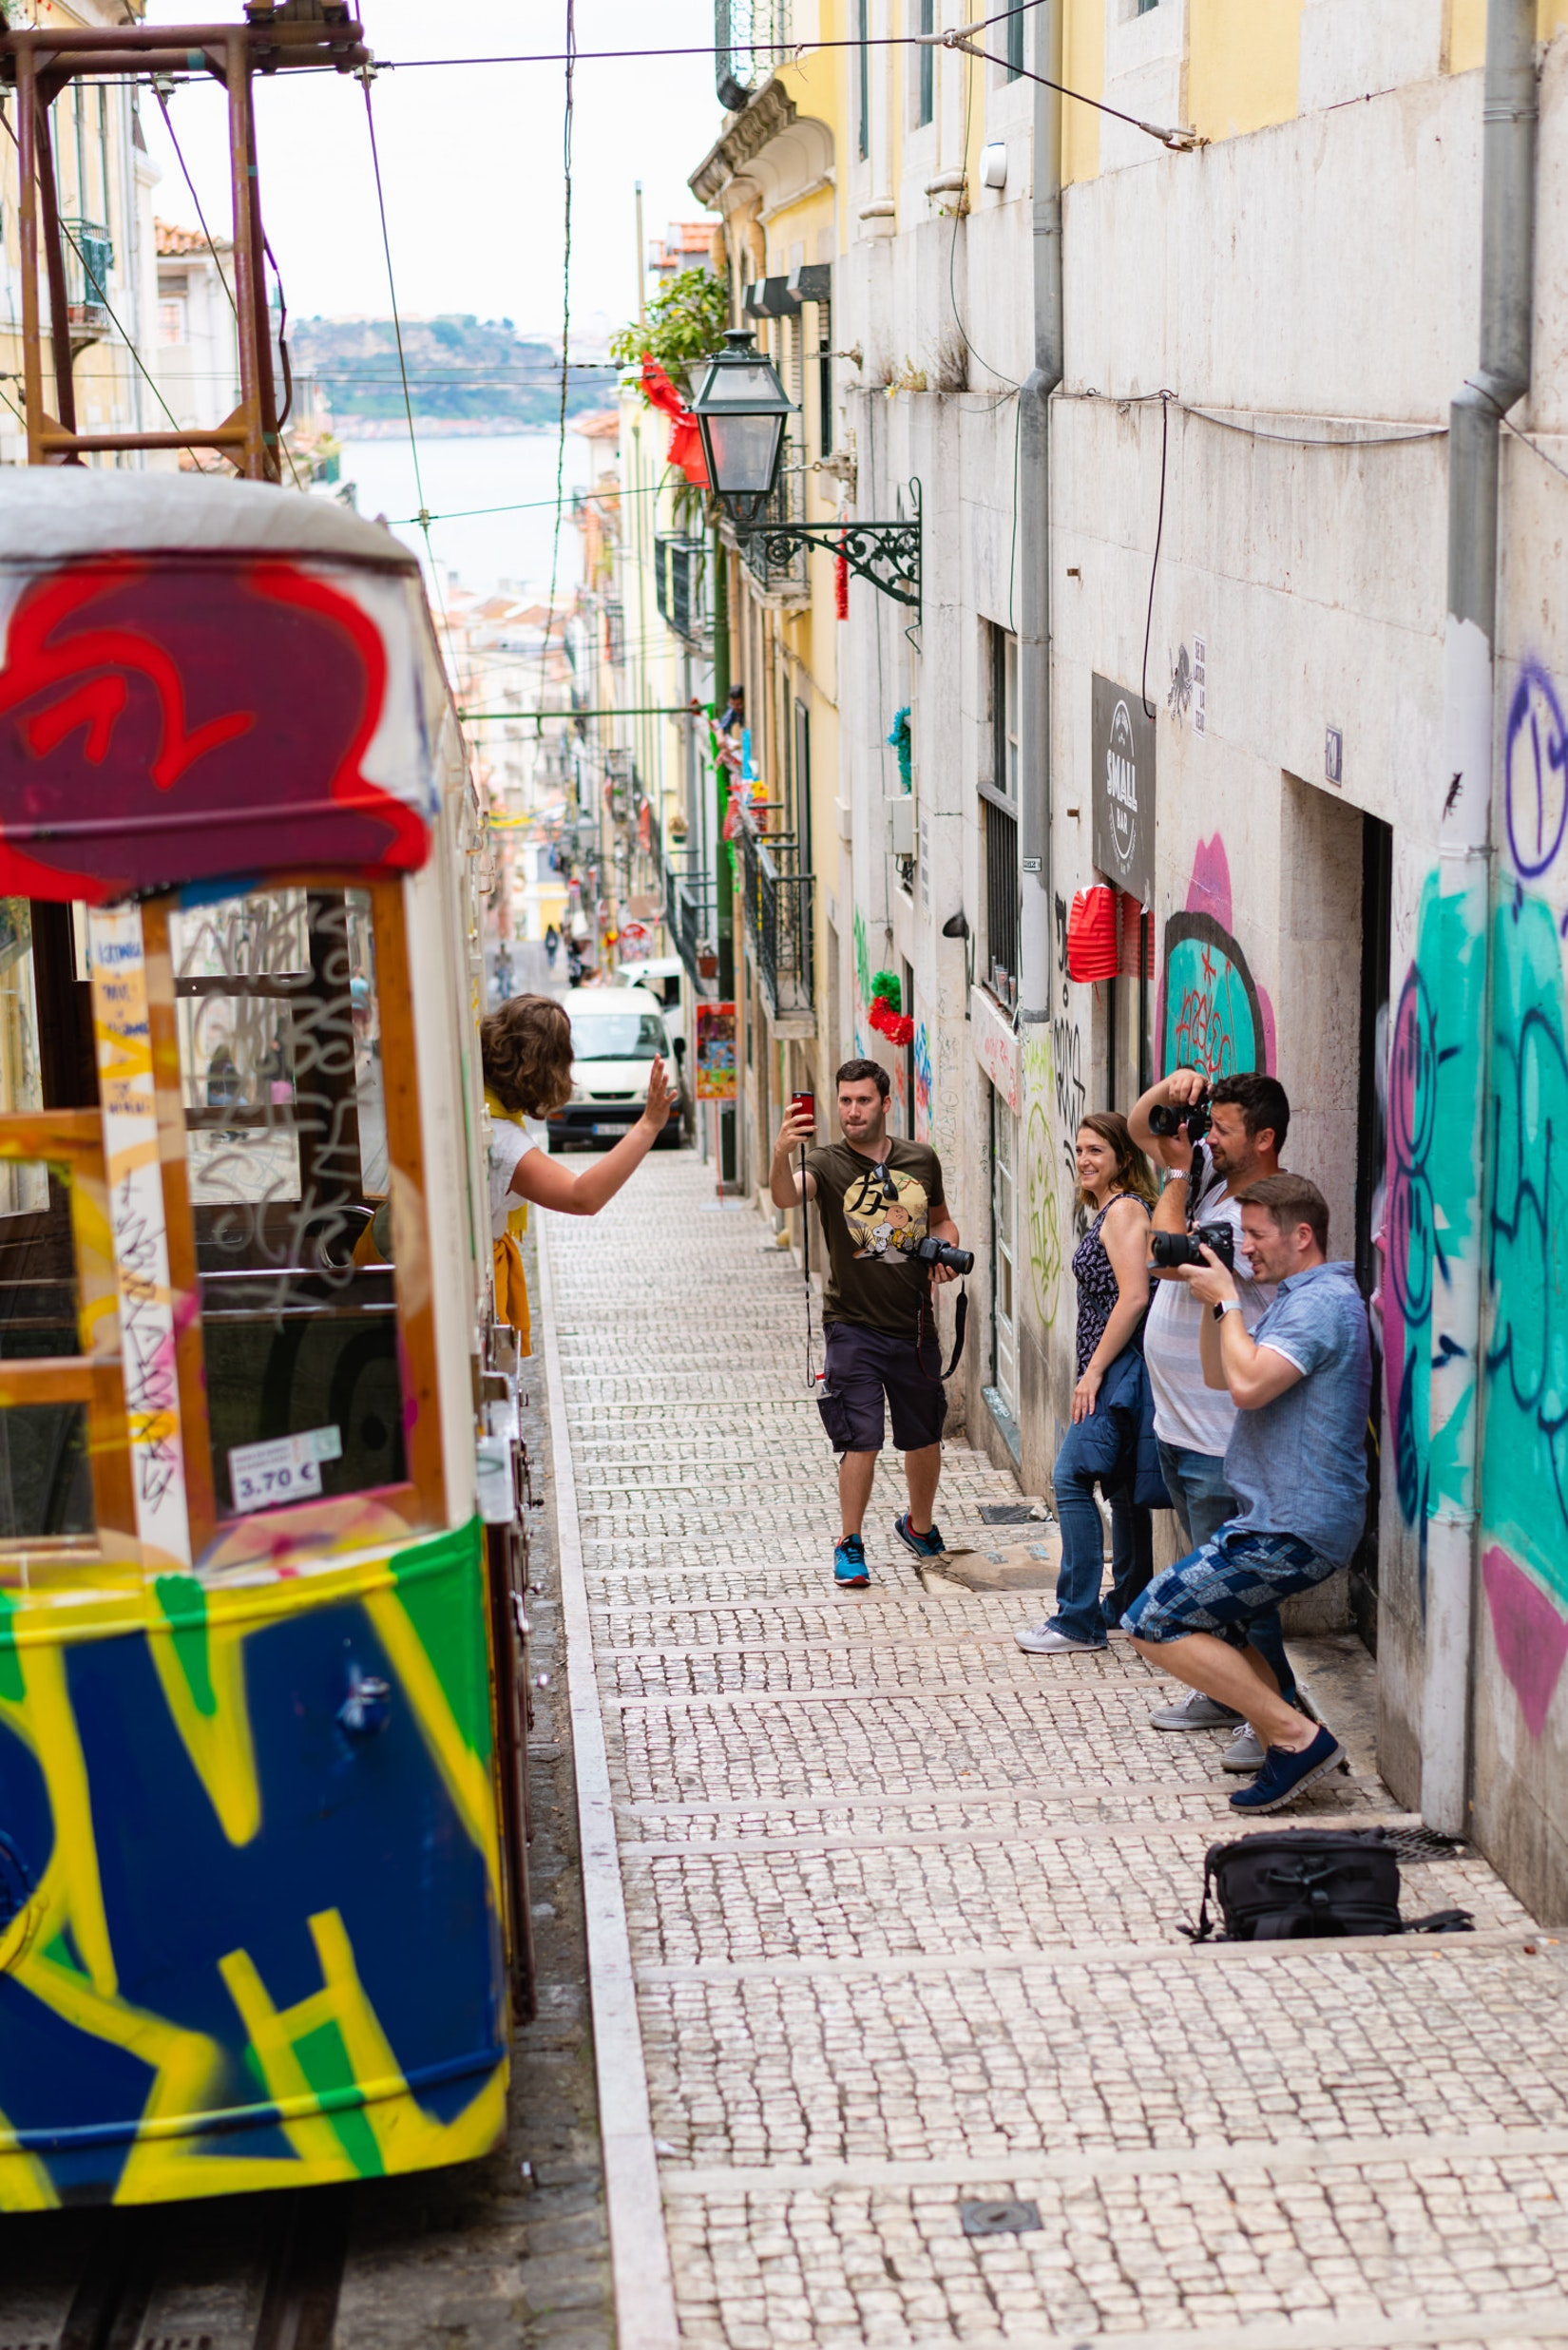 People aking photos of the old streetcar on Rua de Bica in Bairro Alto, Lisbon, Portugal